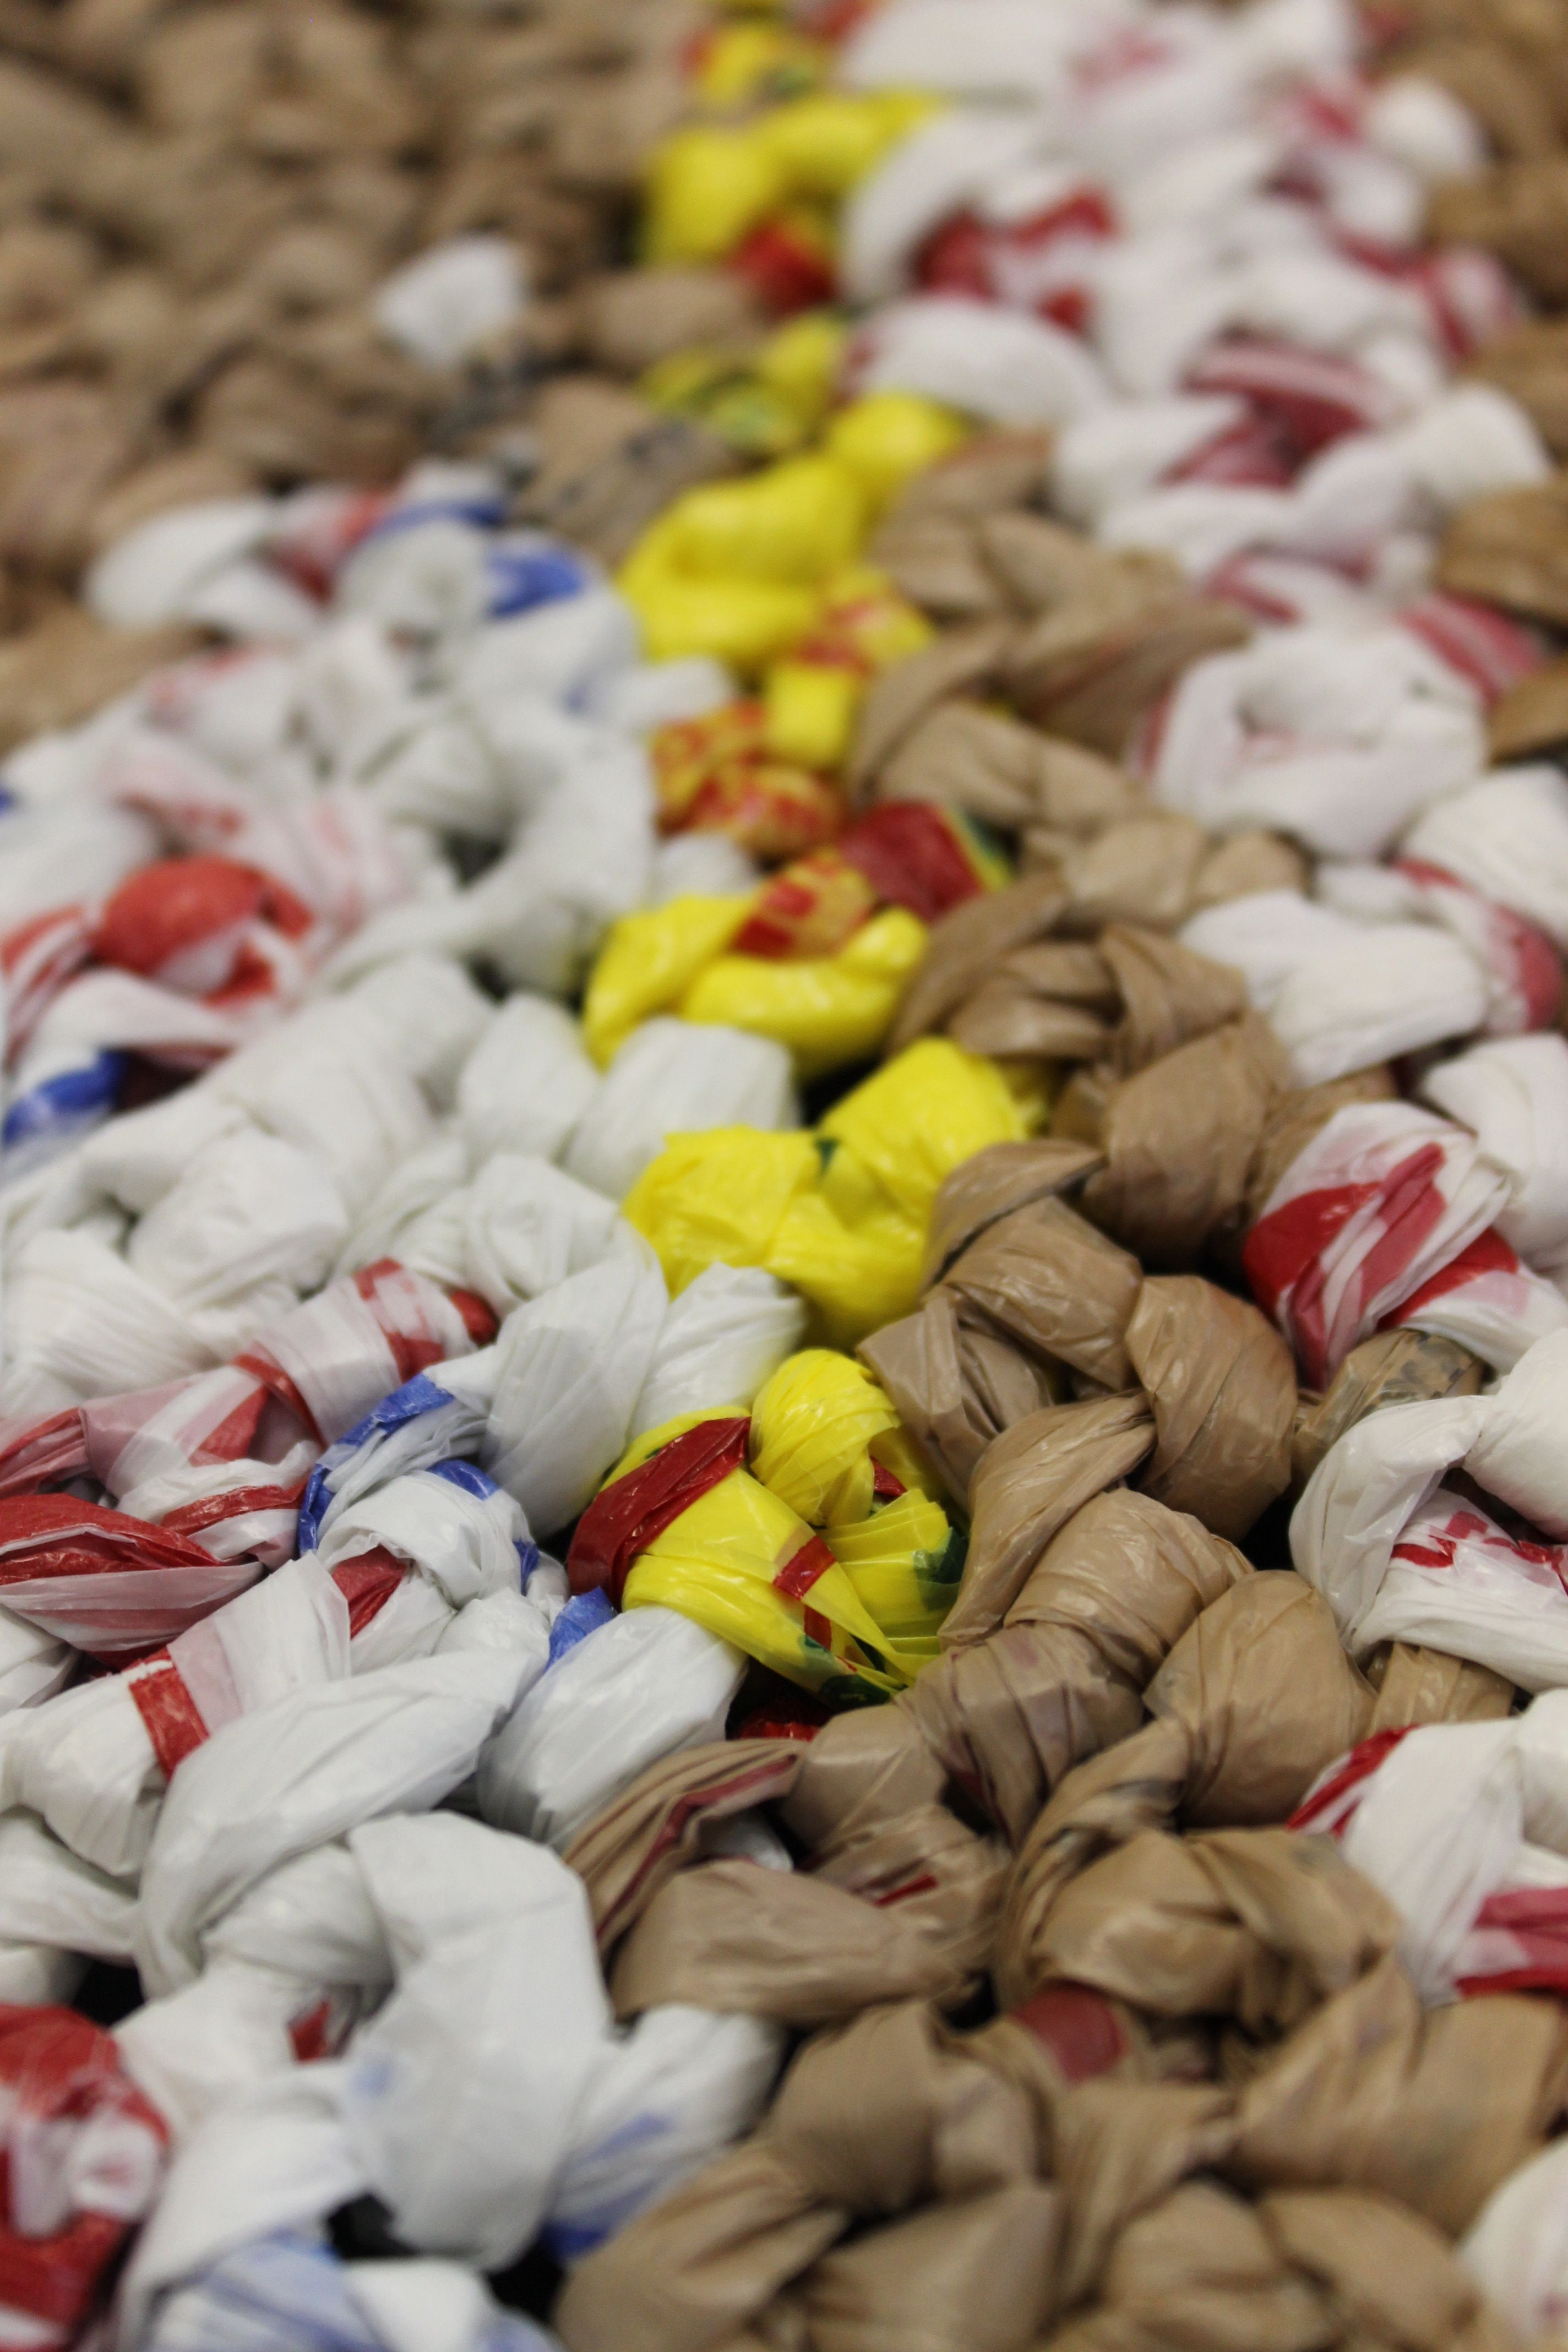 Crochet recycled plastic bags - Crocheting Plastic Bags Into Mats For The Homeless Or People In 3rd World Countries